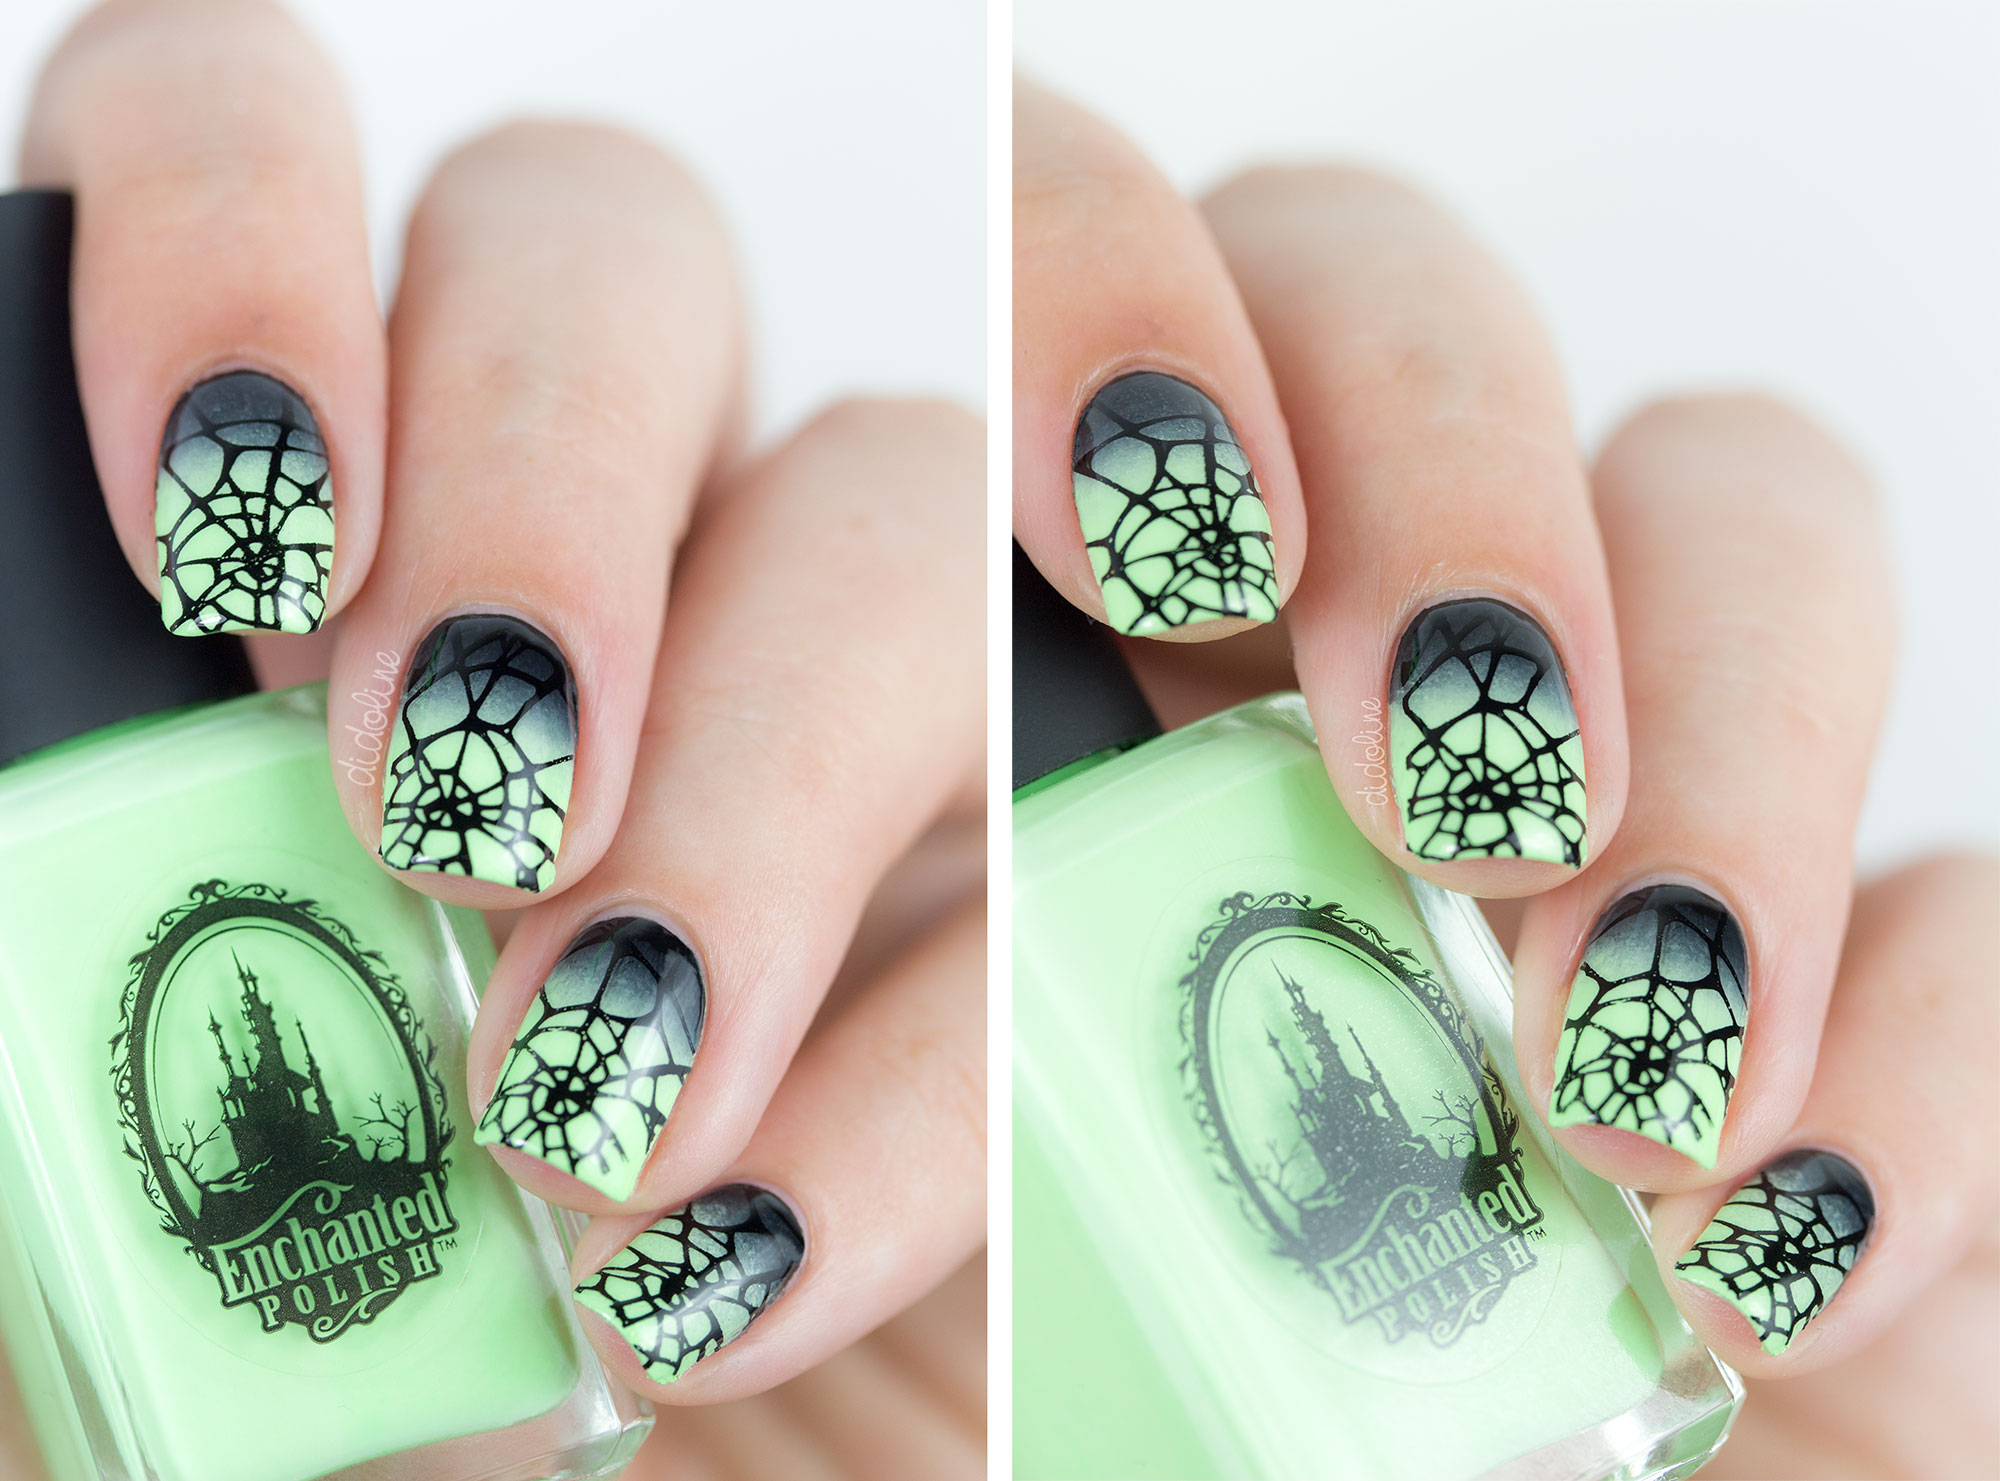 Enchanted Polish - Ectoplasm - Halloween Nails